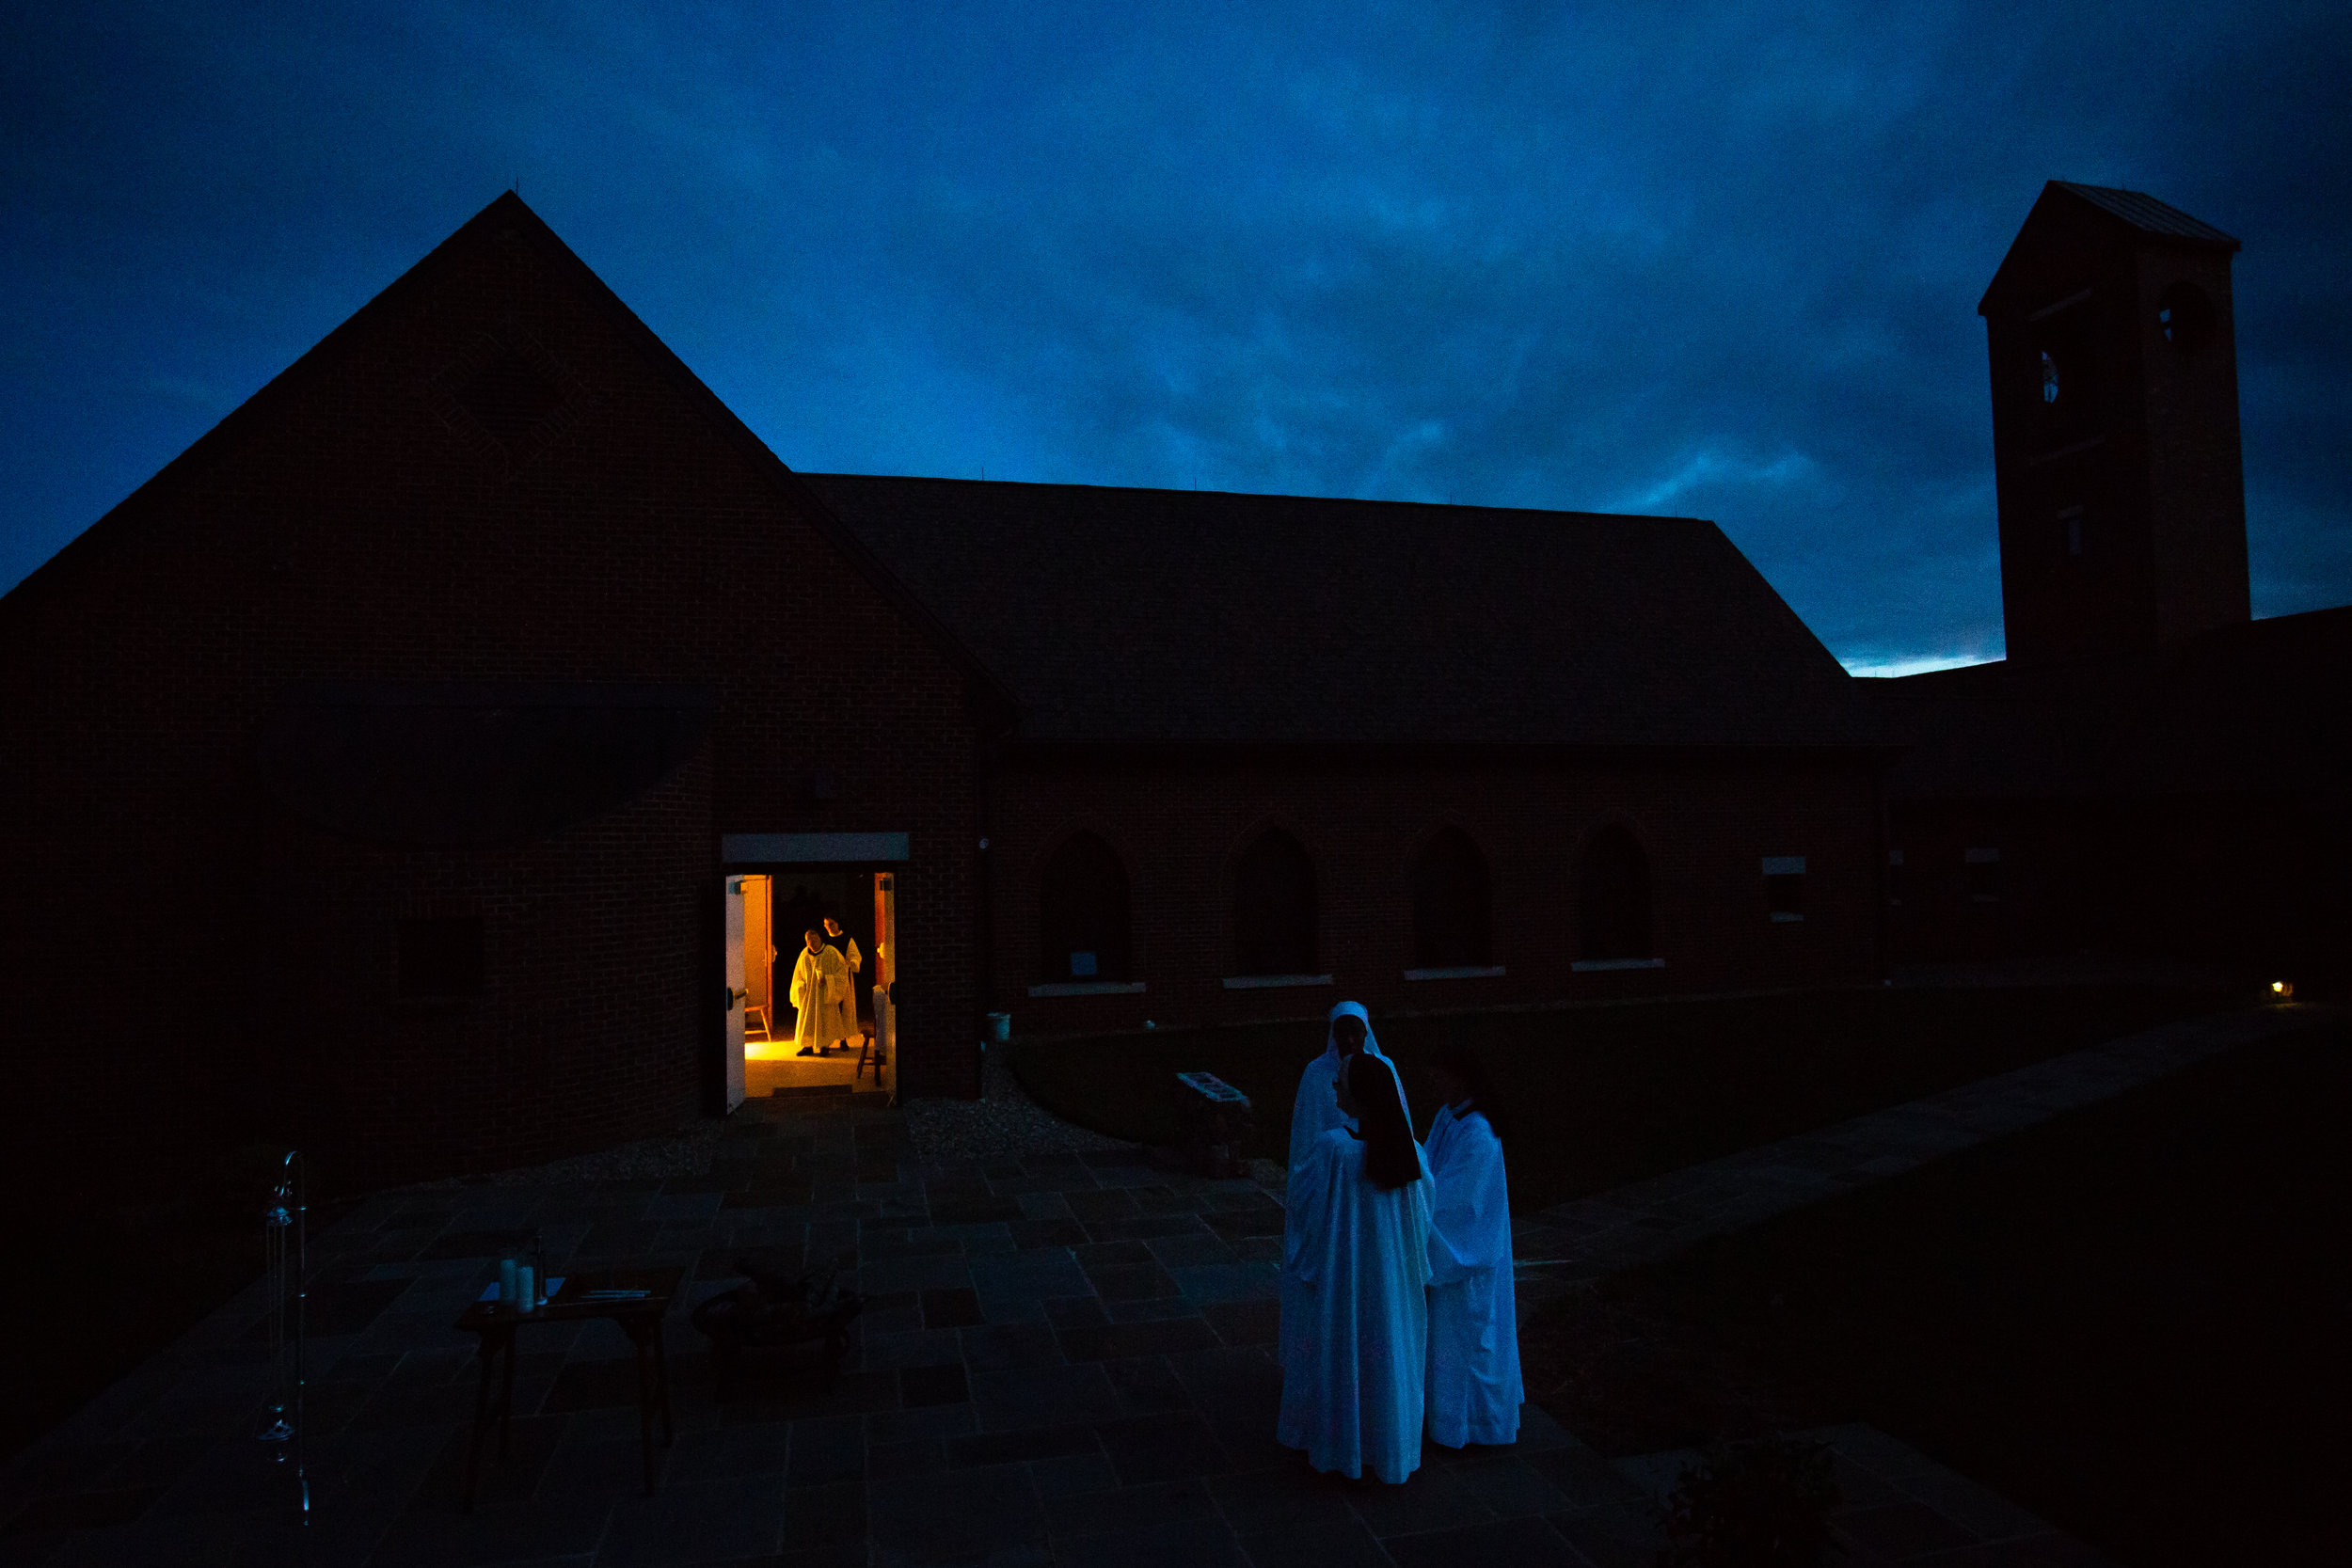 The sisters prepare the patio with candles and a fire for Easter service Saturday evening April 20, 2019 in Crozet, Virginia. Once the guests arrive this begins their procession into the church for Easter mass.